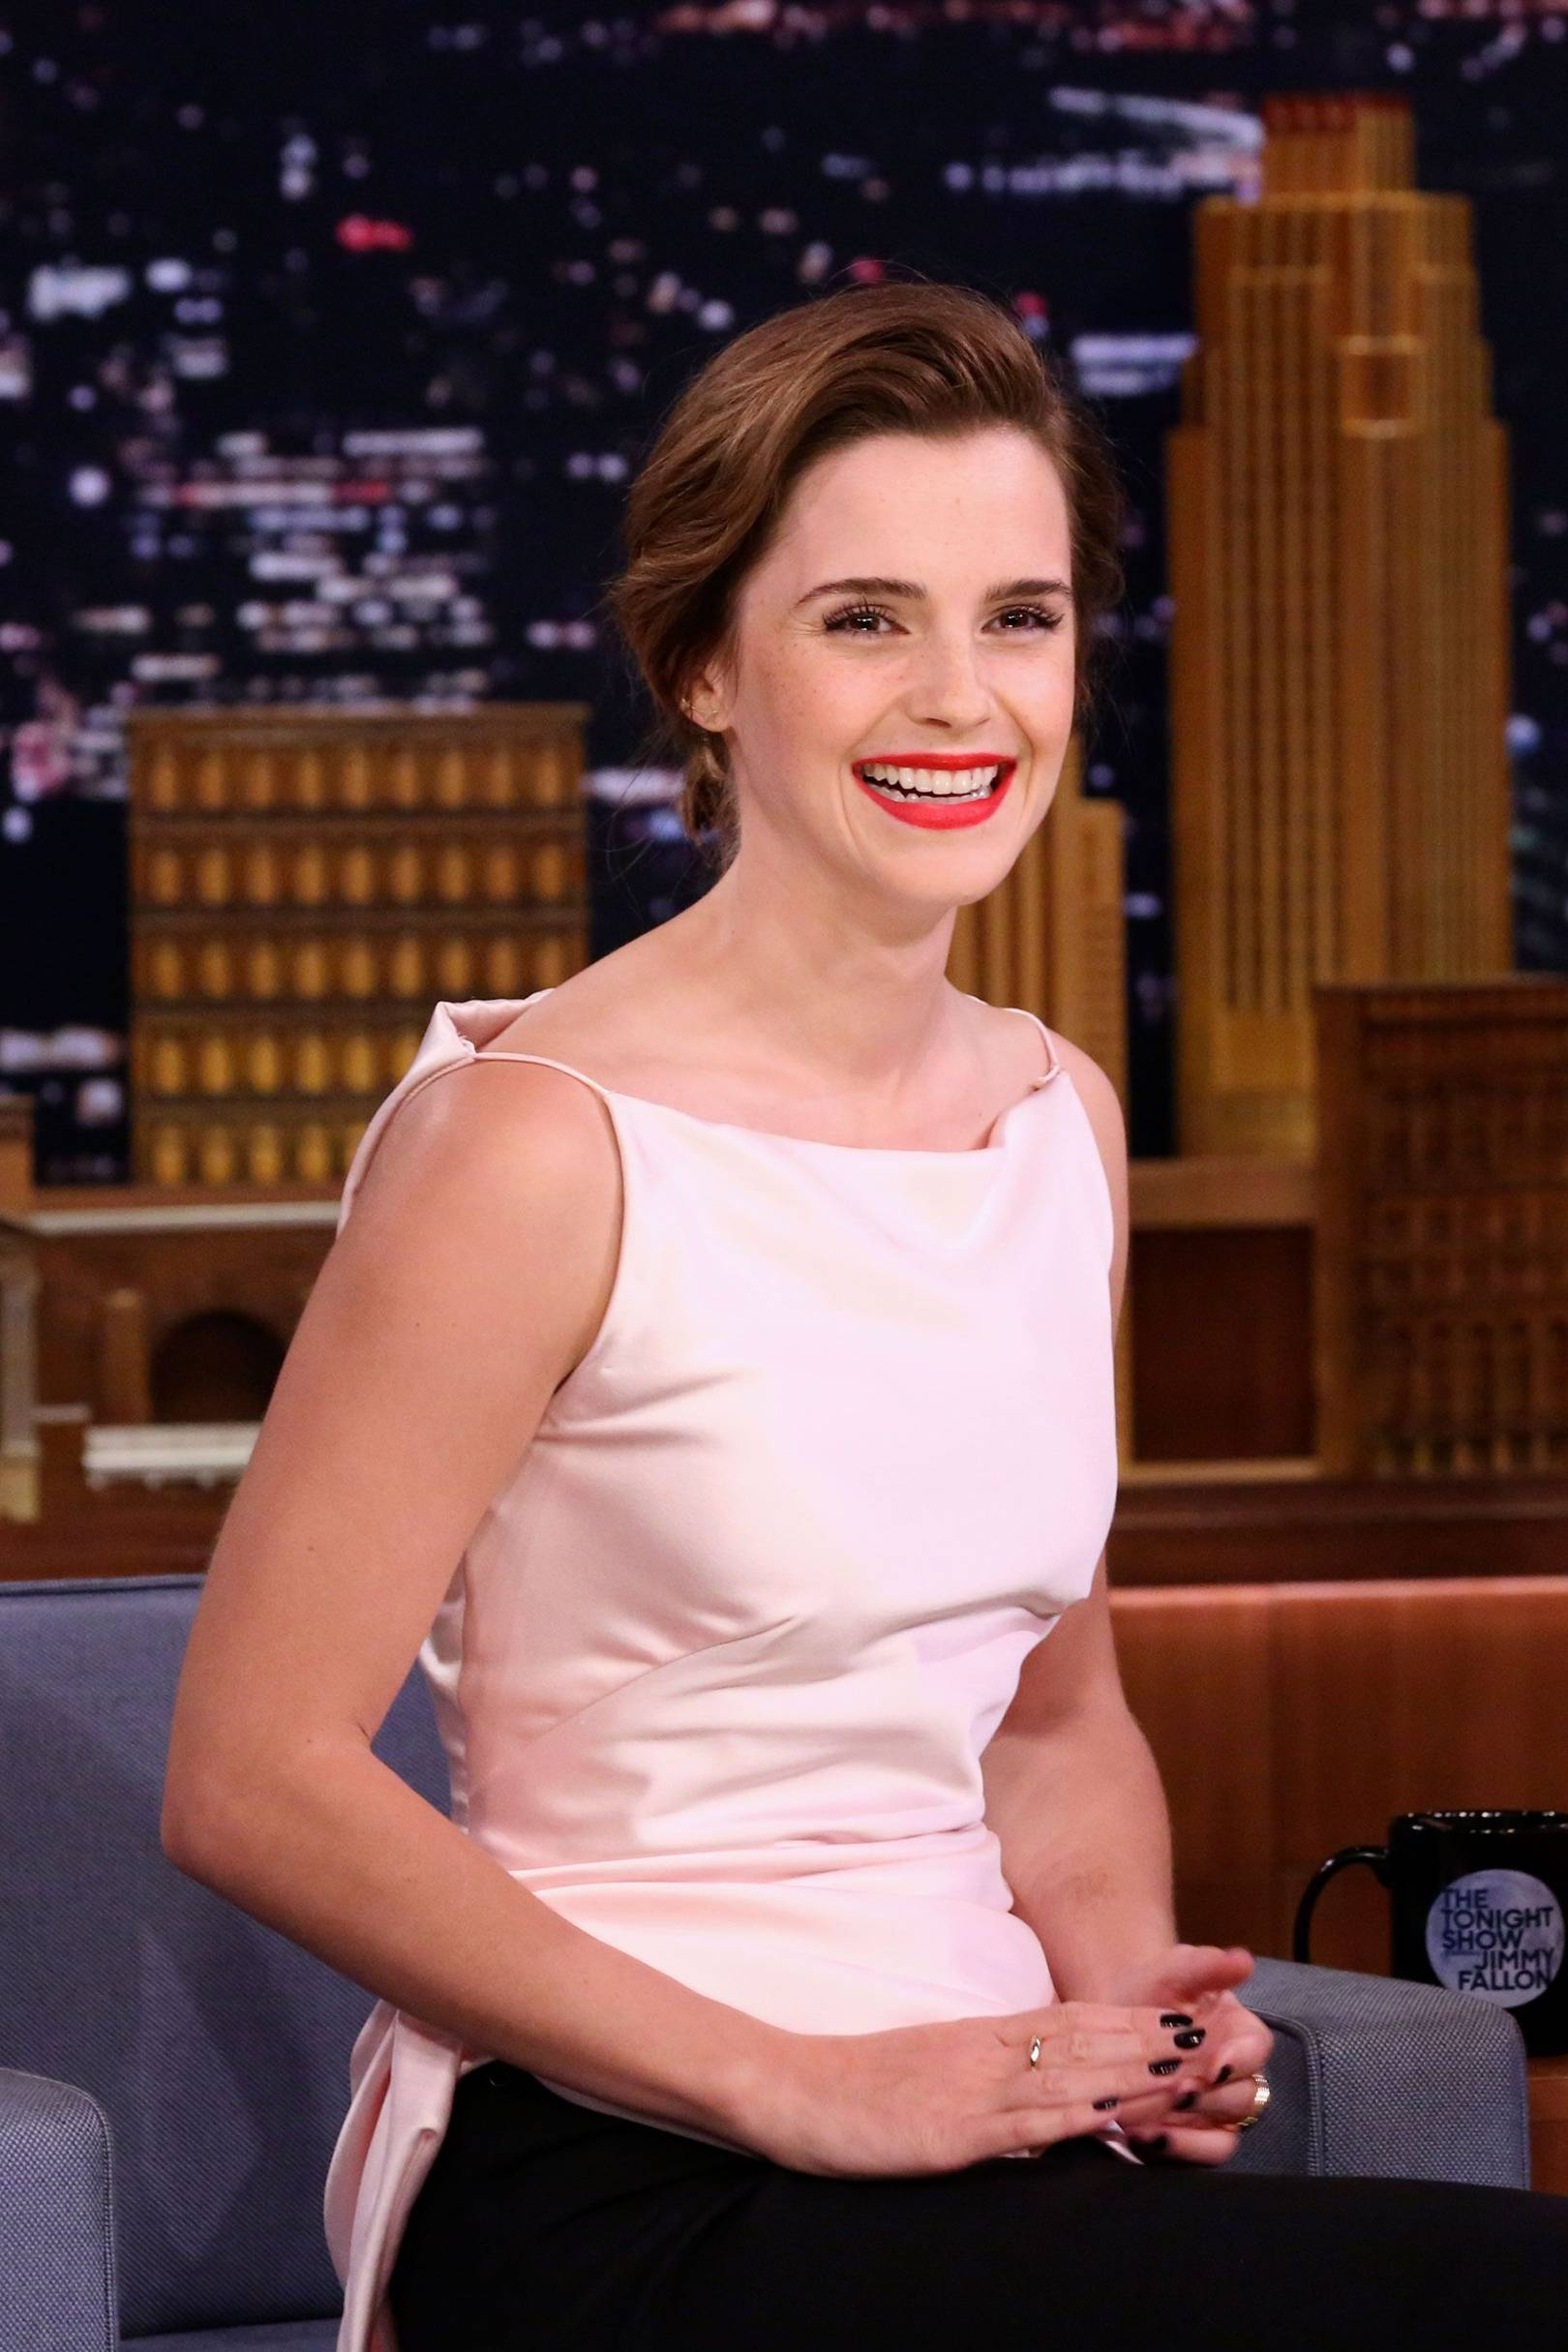 emma watson jimmy fallon kimmel mistake | british vogue